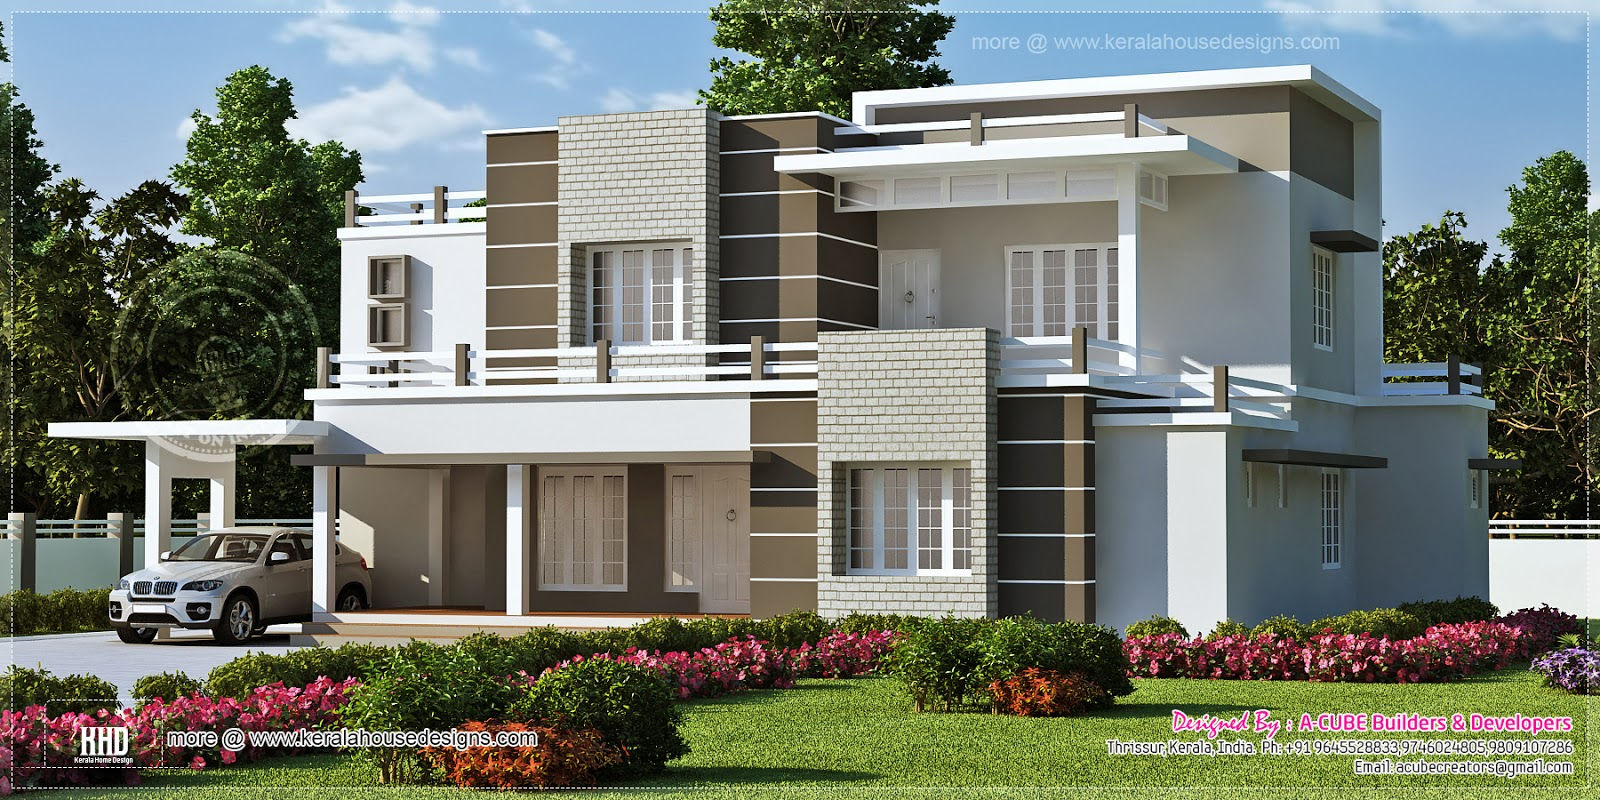 Beautiful sober color contemporary home design kerala for Design house architecture hamilton